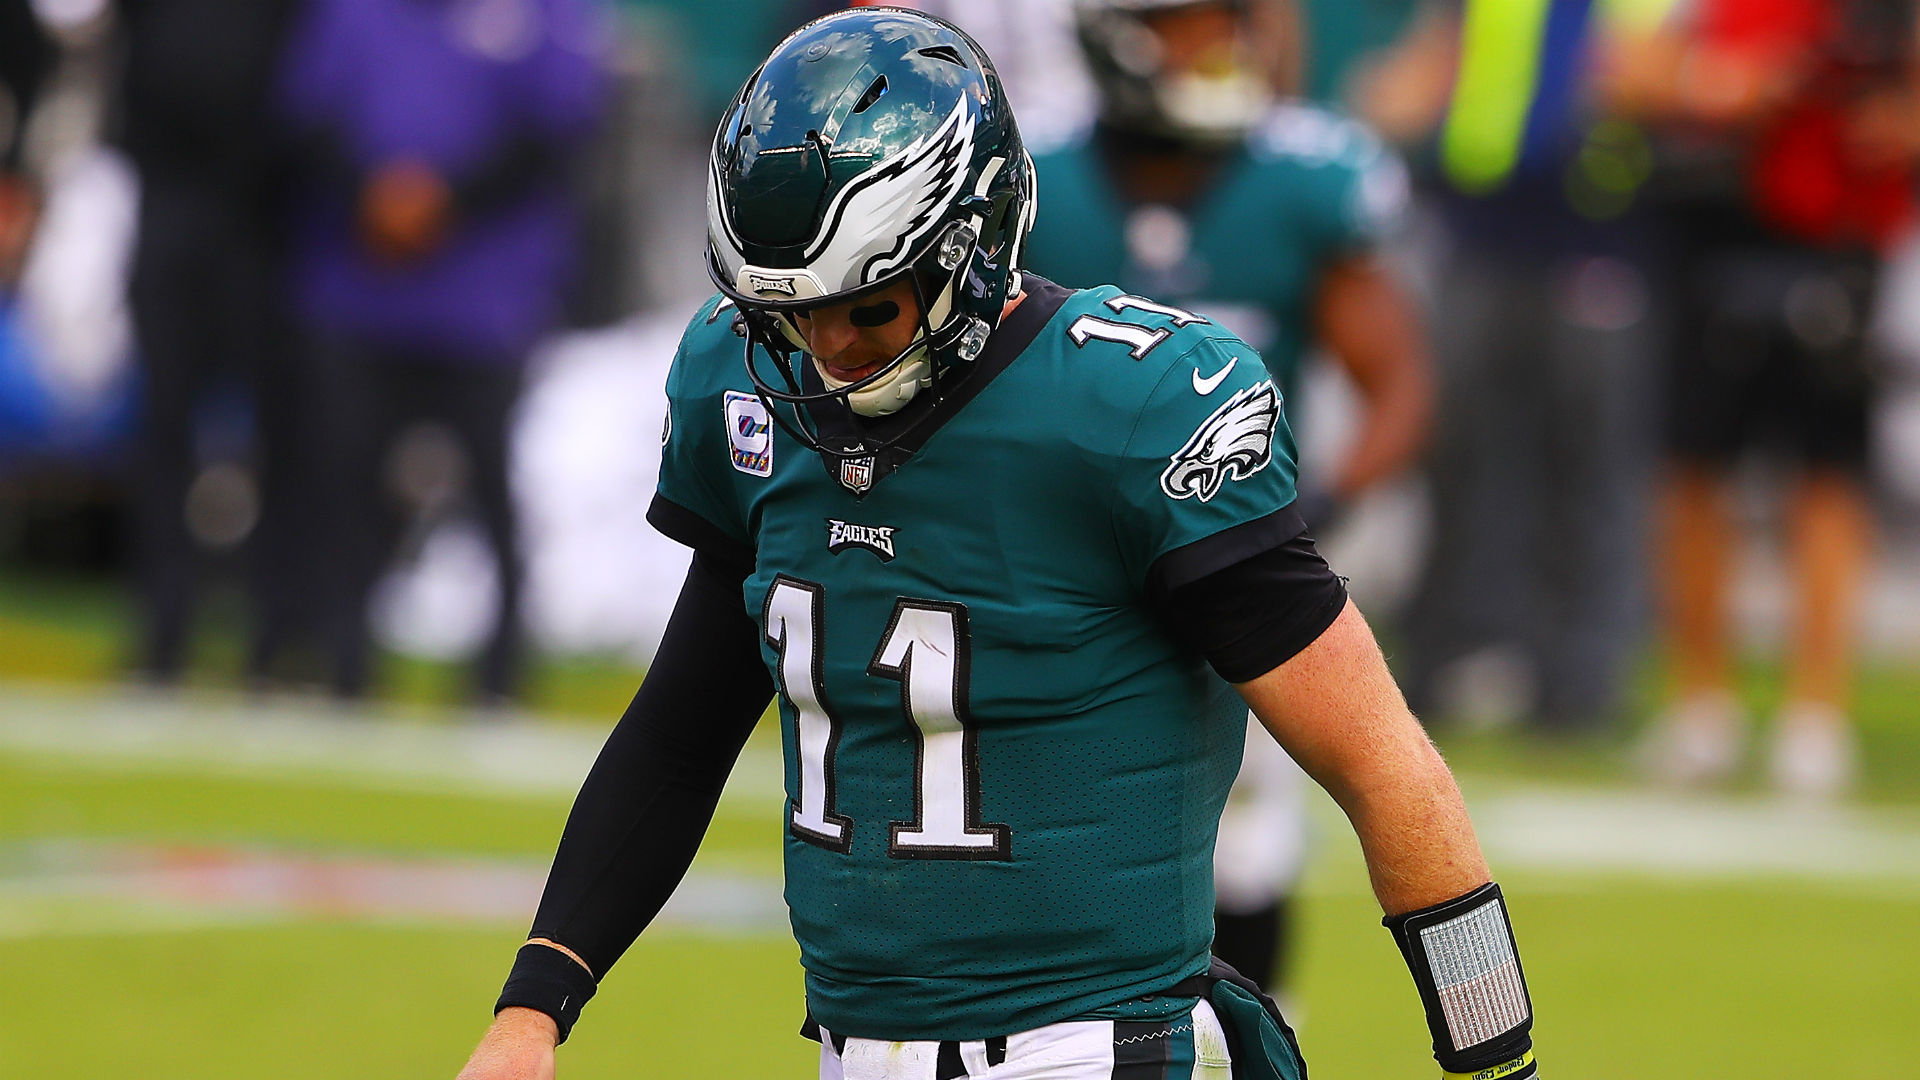 Eagles reportedly plan to keep Carson Wentz for the long haul, but contract plays into it